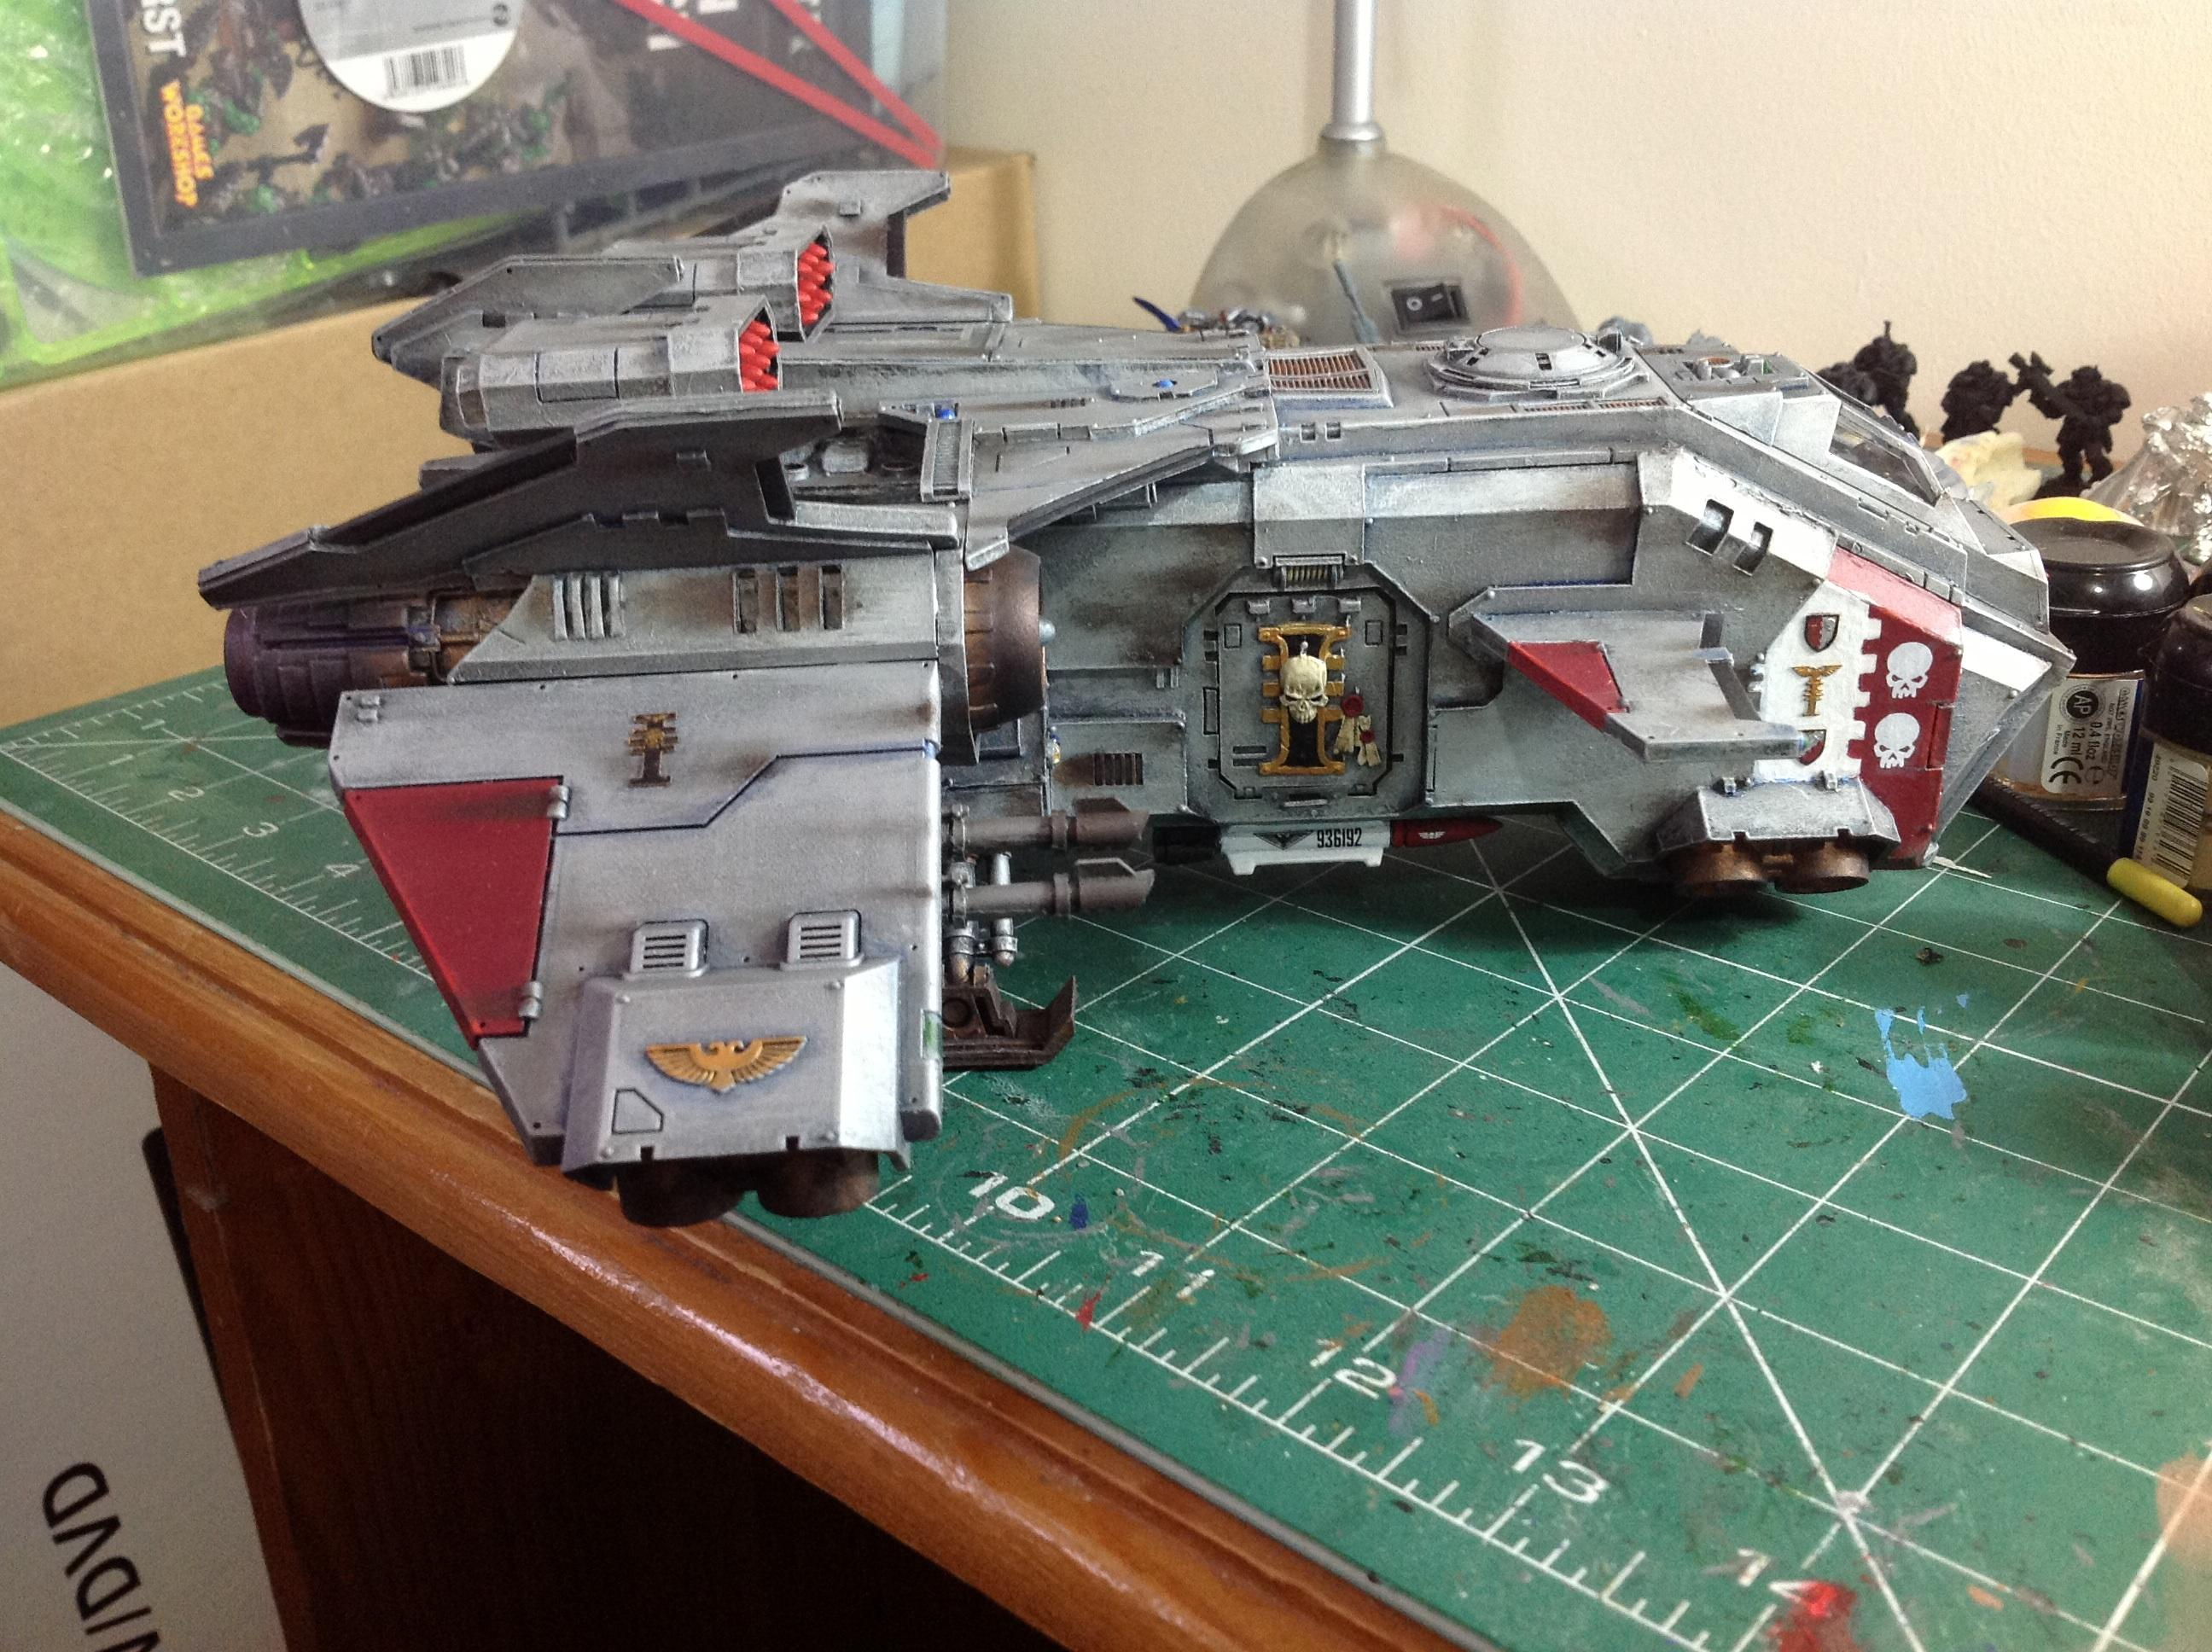 Aircraft, Flyer, Forge World, Gk, Grey Knights, Space Marines, Storm Eagle, Stormeagle, Warhammer 40,000